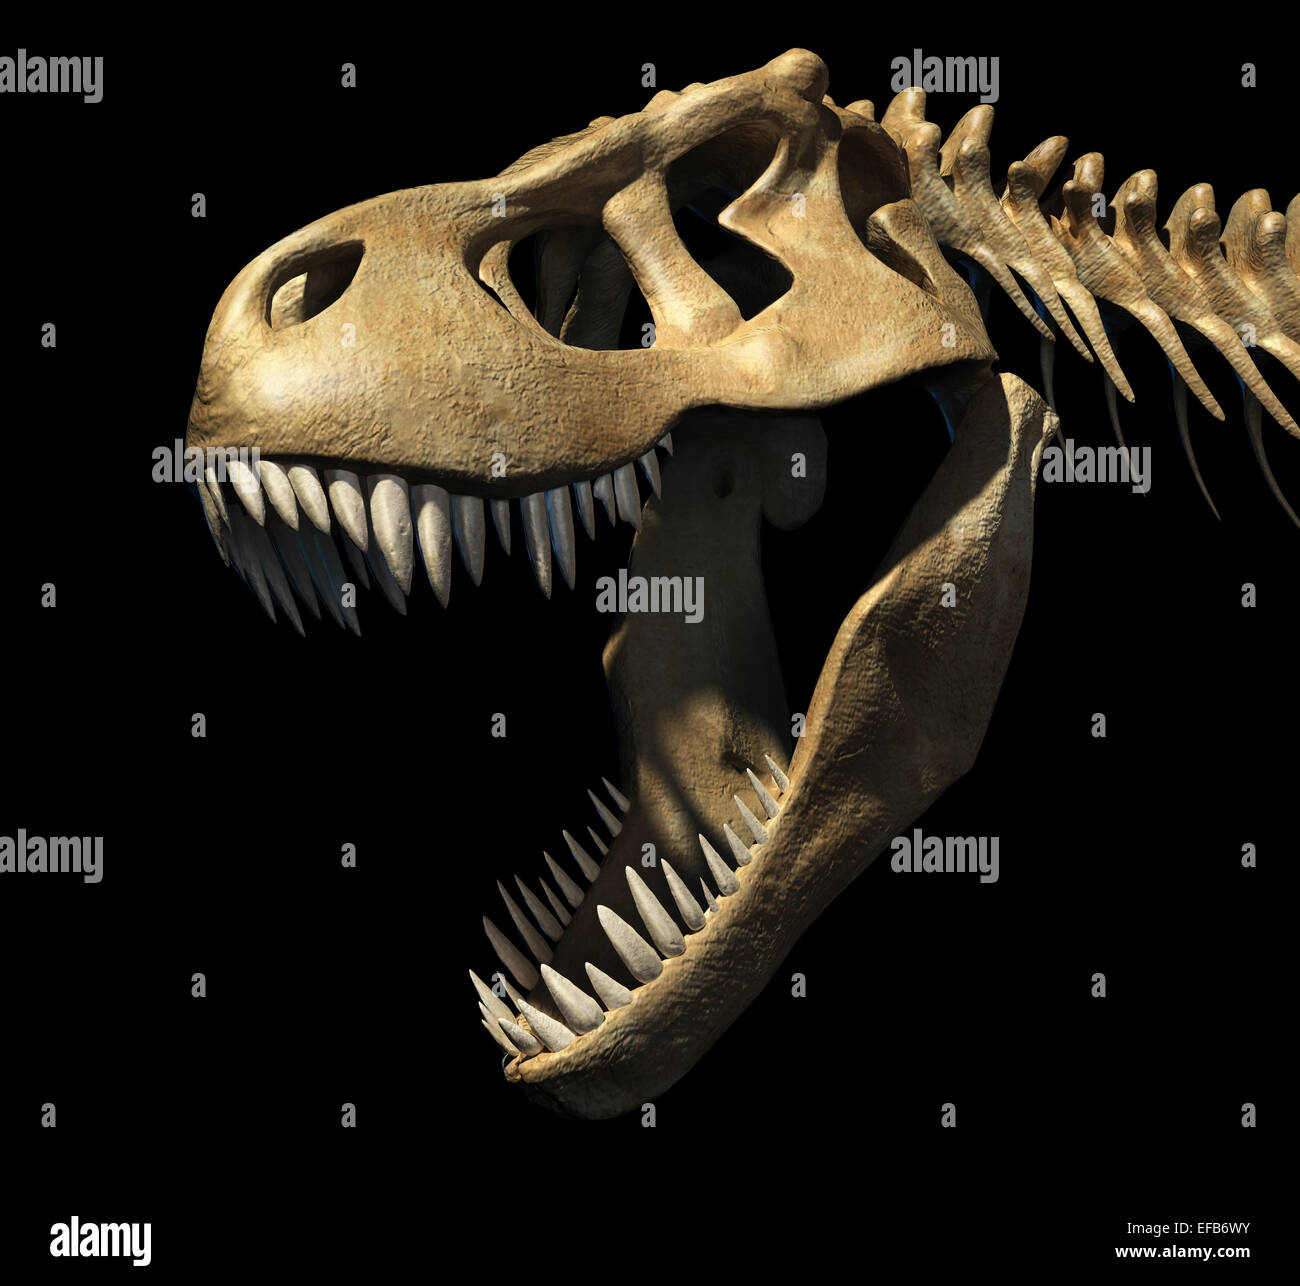 T-Rex skull close-up. On black background. Clipping path included. - Stock Image